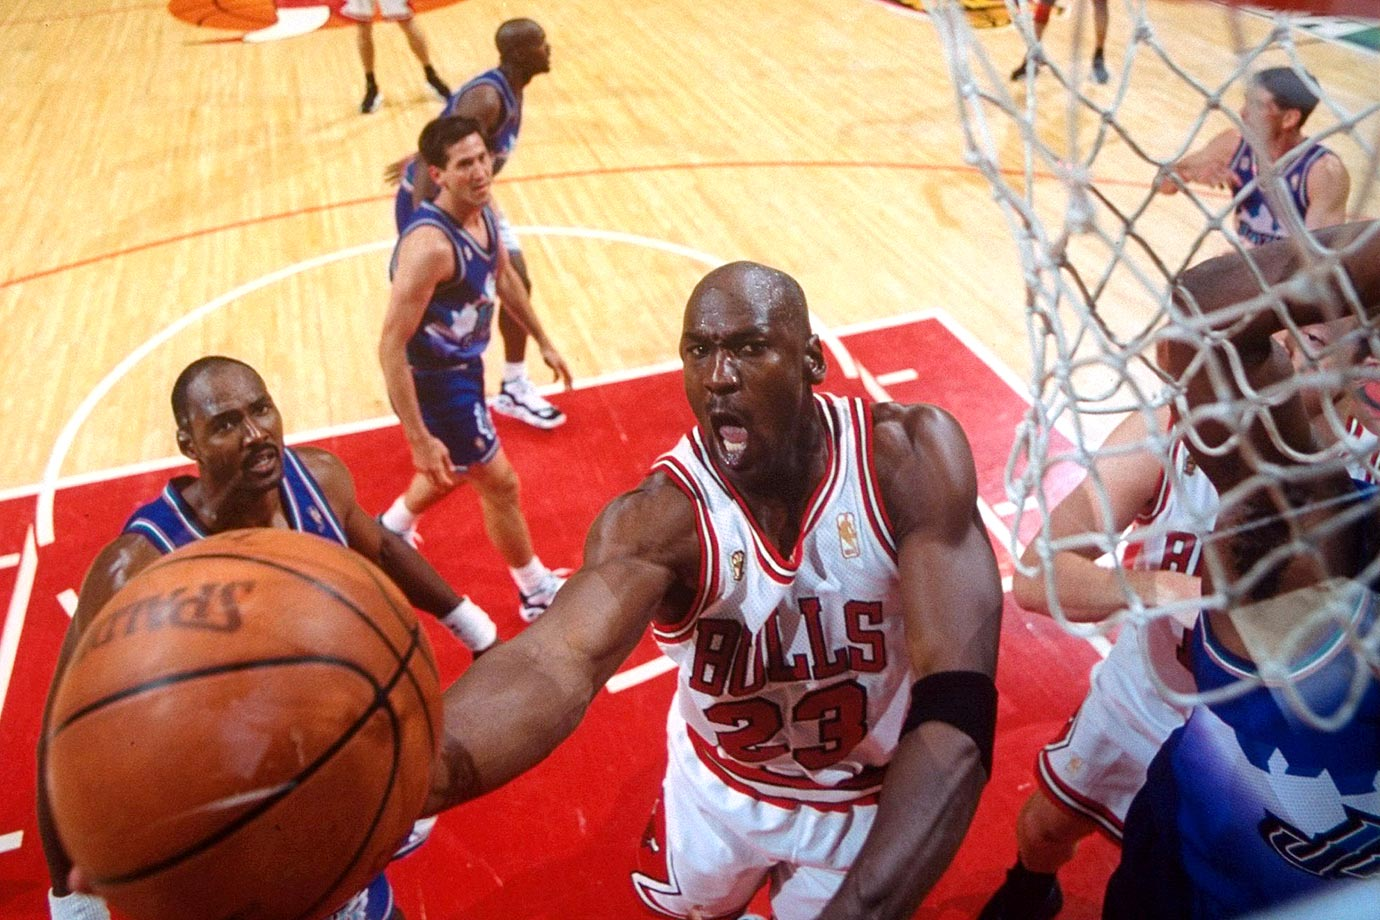 Michael Jordan takes the ball to the hoop against the Utah Jazz in Chicago in the 1997 NBA Finals. The Bulls won all three games of the series at the United Center, including Game 1, in which Jordan hit a game-winning 20-footer at the buzzer.